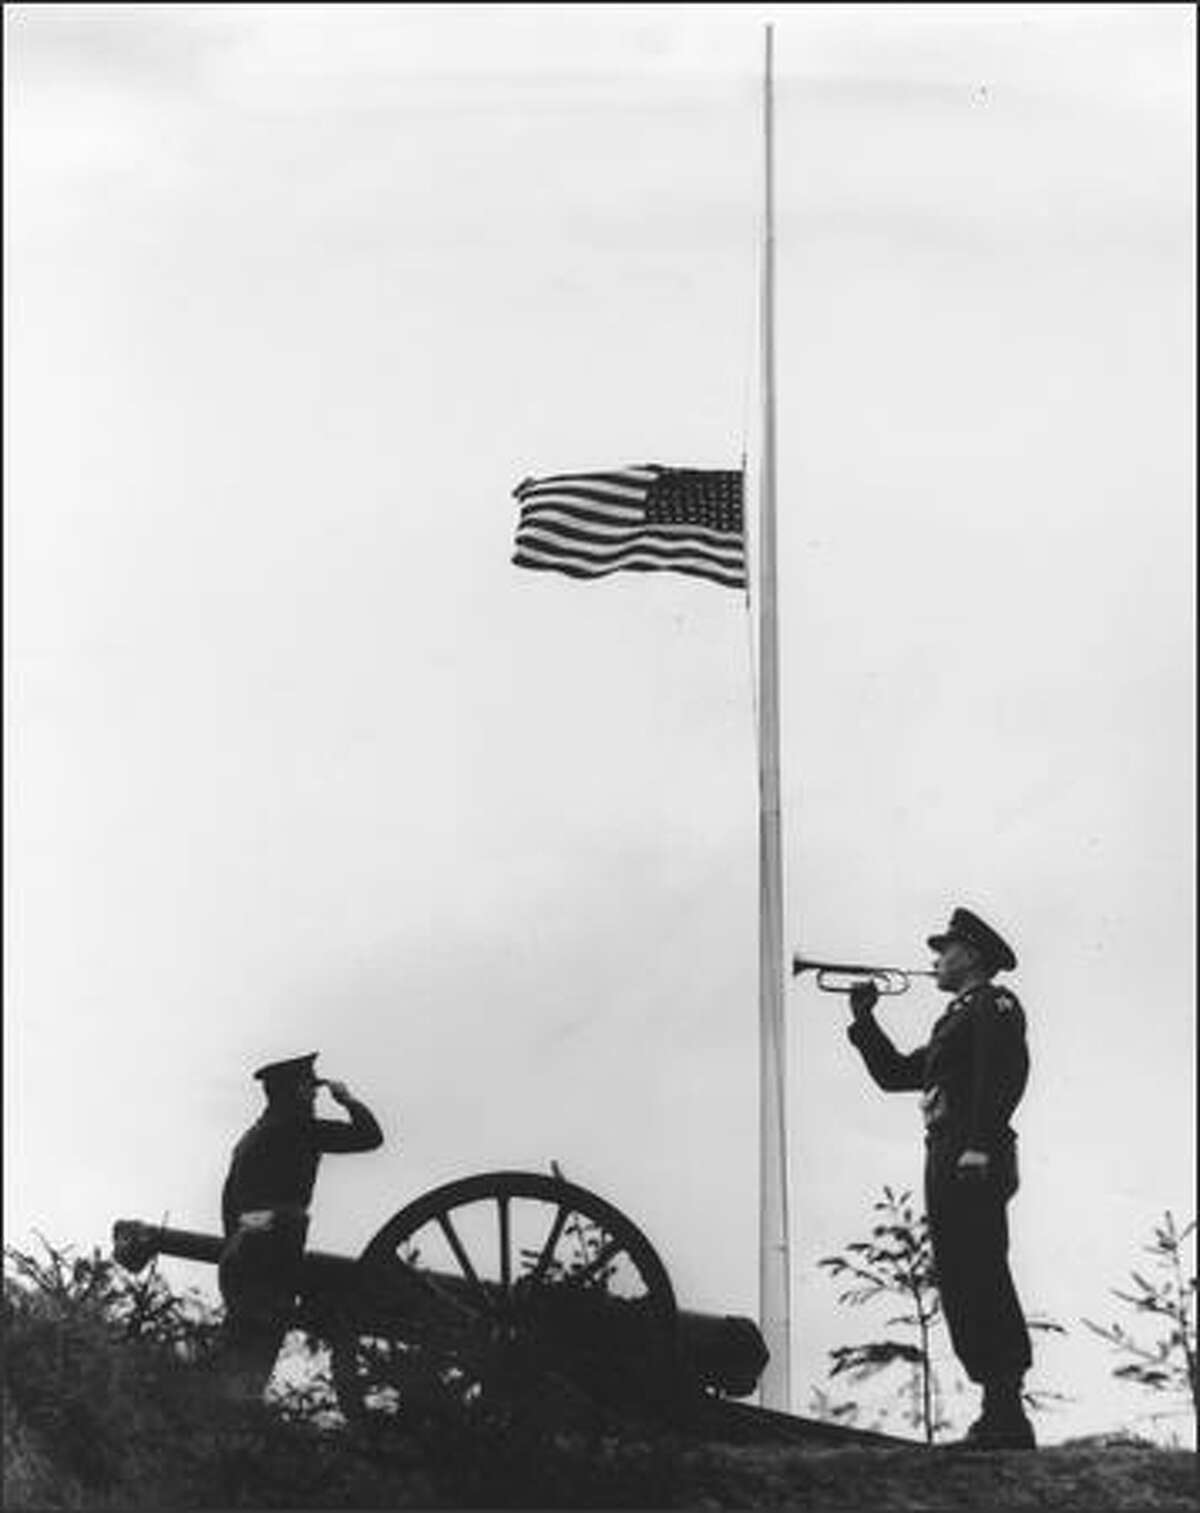 In 1949, Fort Lewis soldiers Sgt. Edgar Enfinger, left, and Pfc. John Richardson observe Armistice Day in solemn and traditional fashion with a salute to the flag.